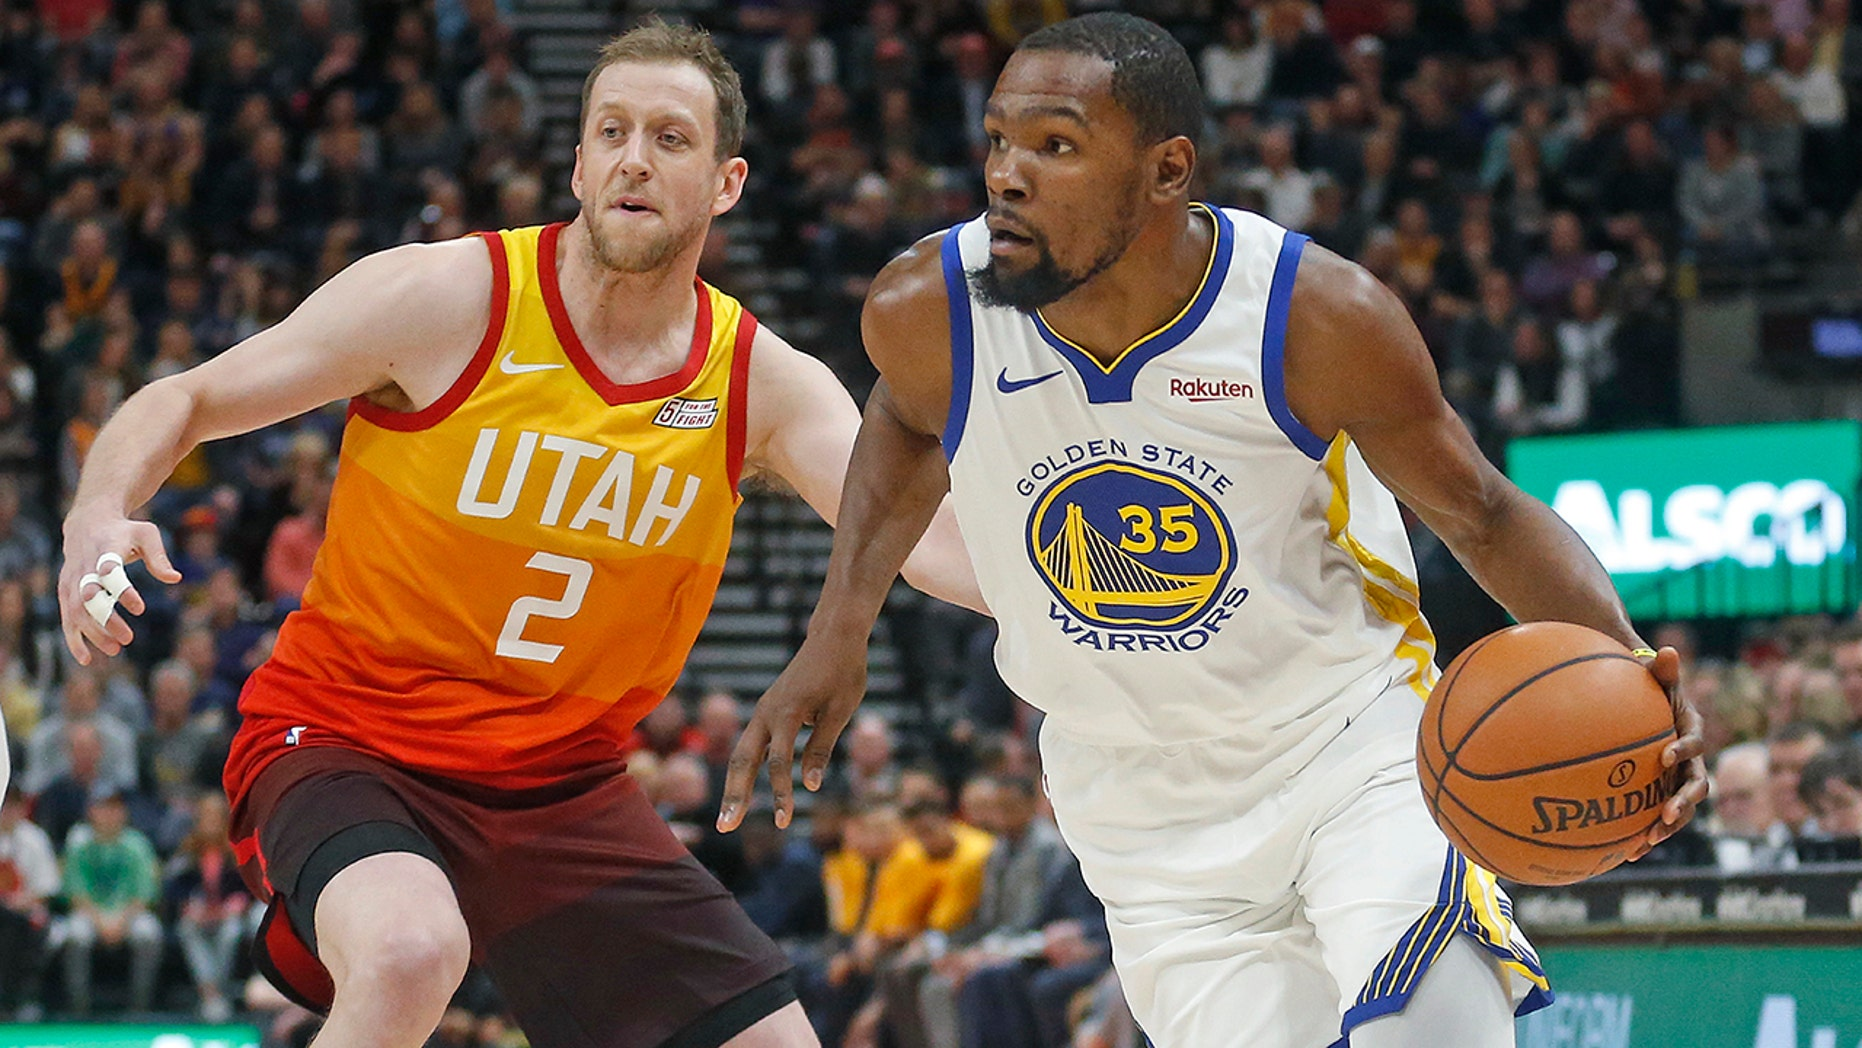 e27d10d3b071 Golden State Warriors forward Kevin Durant (35) drives around Utah Jazz  forward Joe Ingles